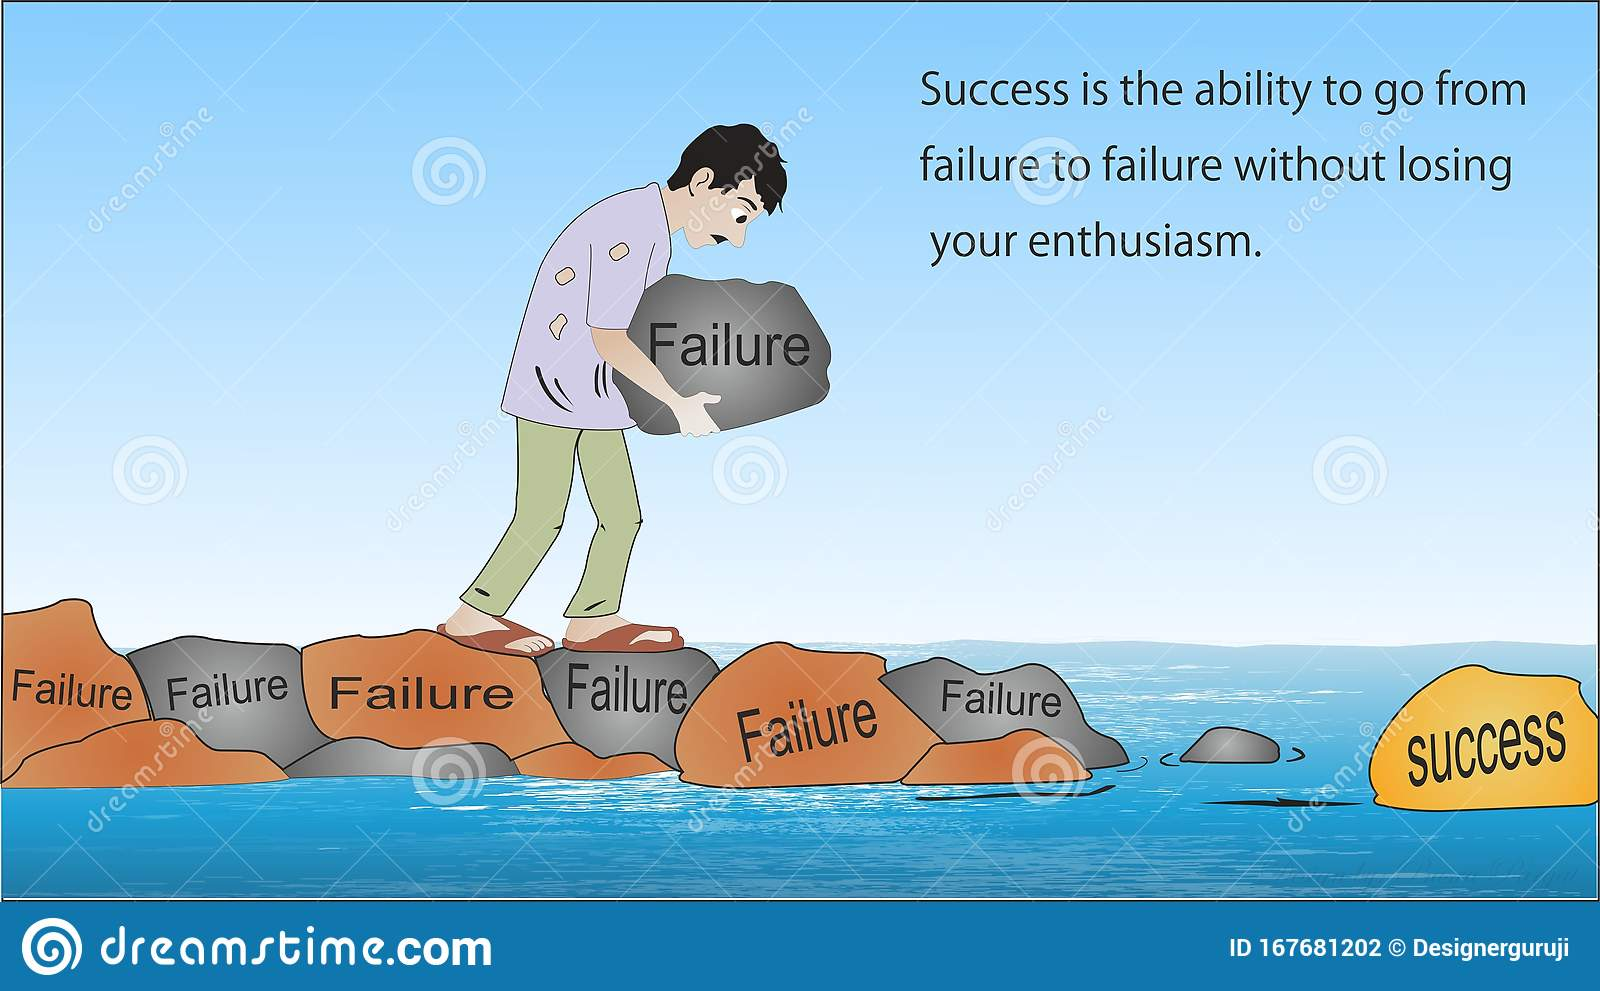 Sucess Is The Ability To Go From Failure Stock Illustration Illustration Of Truth Time 167681202 The best gifs are on giphy. https www dreamstime com sucess ability to go failure losing your enthuiasm image167681202